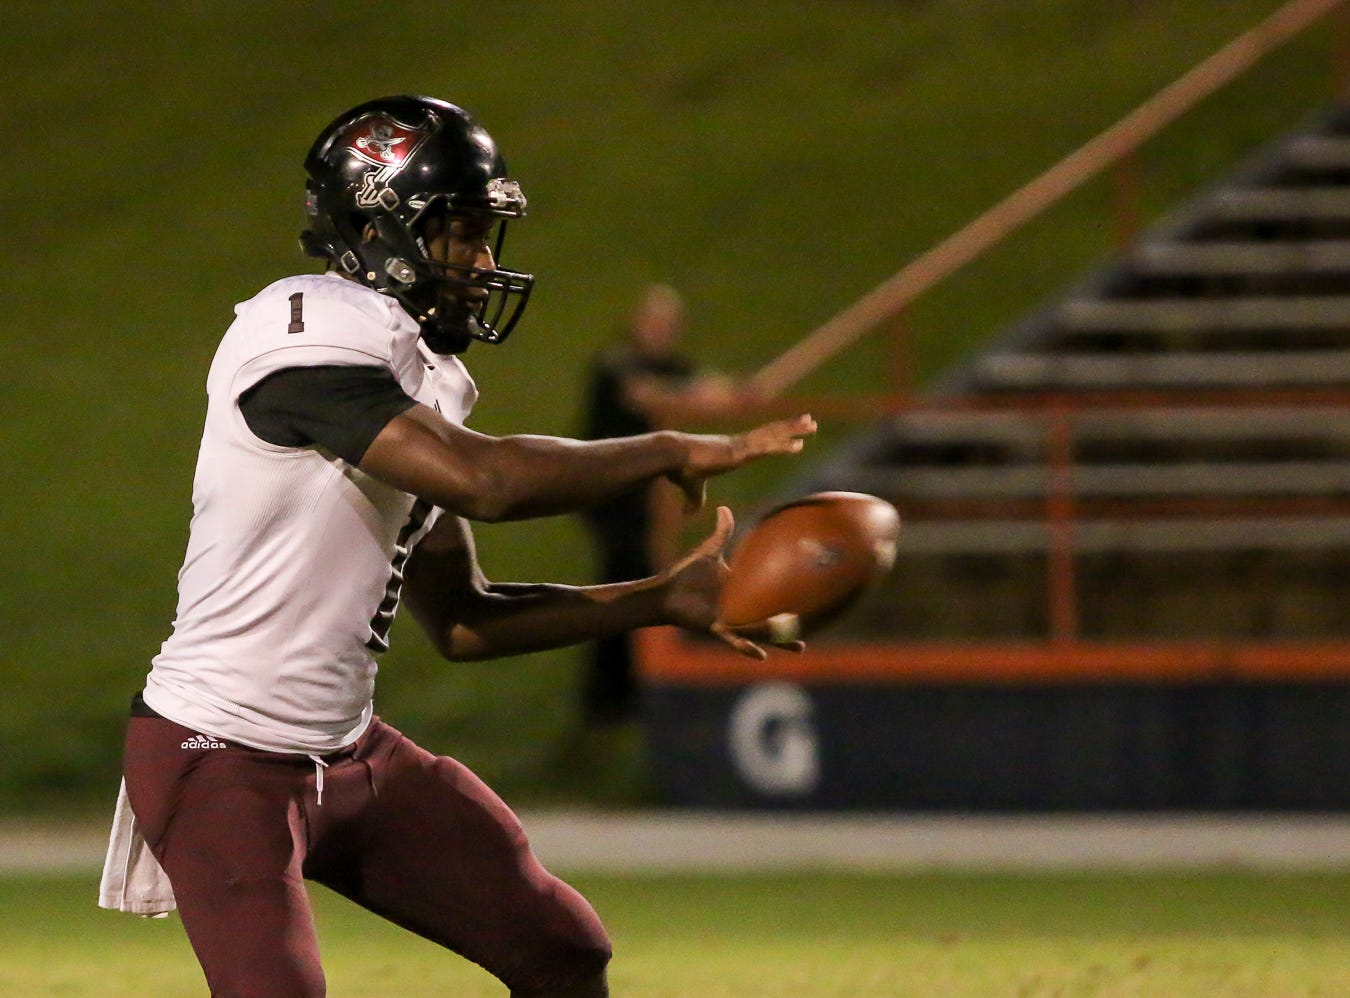 Navarre quarterback Marlon Courtney III (1) takes a snap against Escambia during the Gators' homecoming game at Escambia High School on Friday, October 5, 2018.